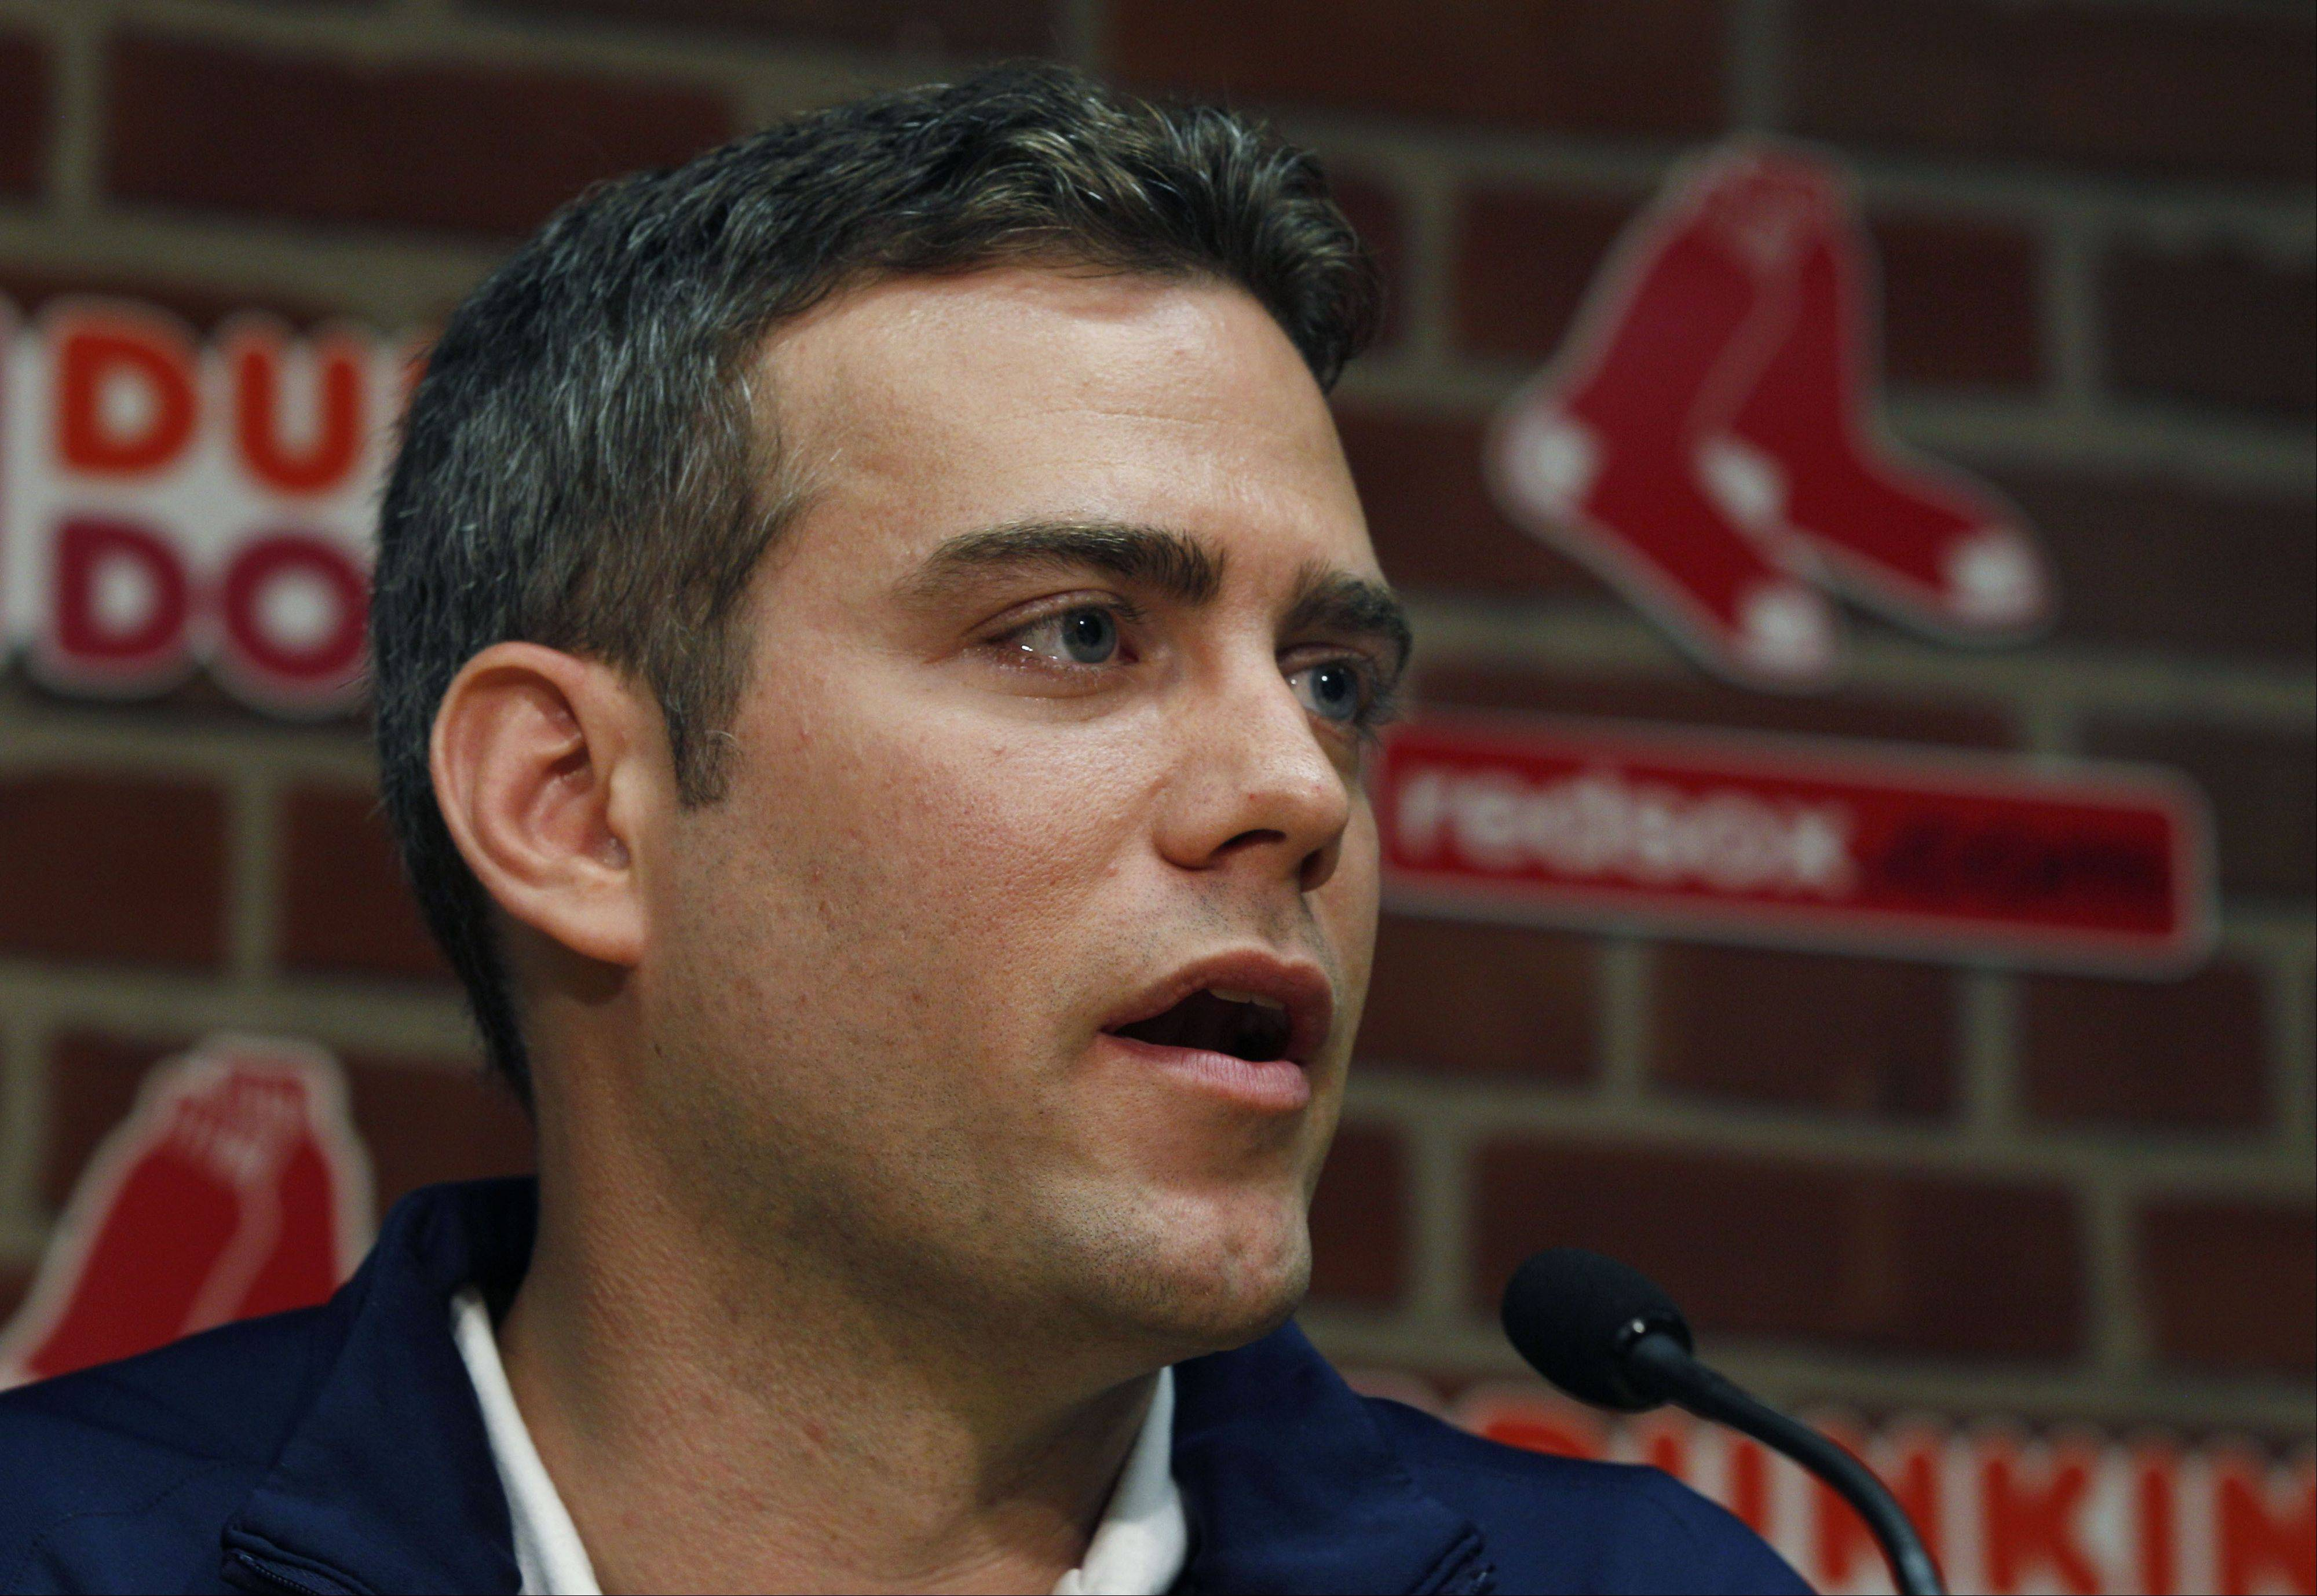 Boston Red Sox general manager Theo Epstein is close to leaving the organization for a more powerful position with the Cubs, according to a Boston Herald report.